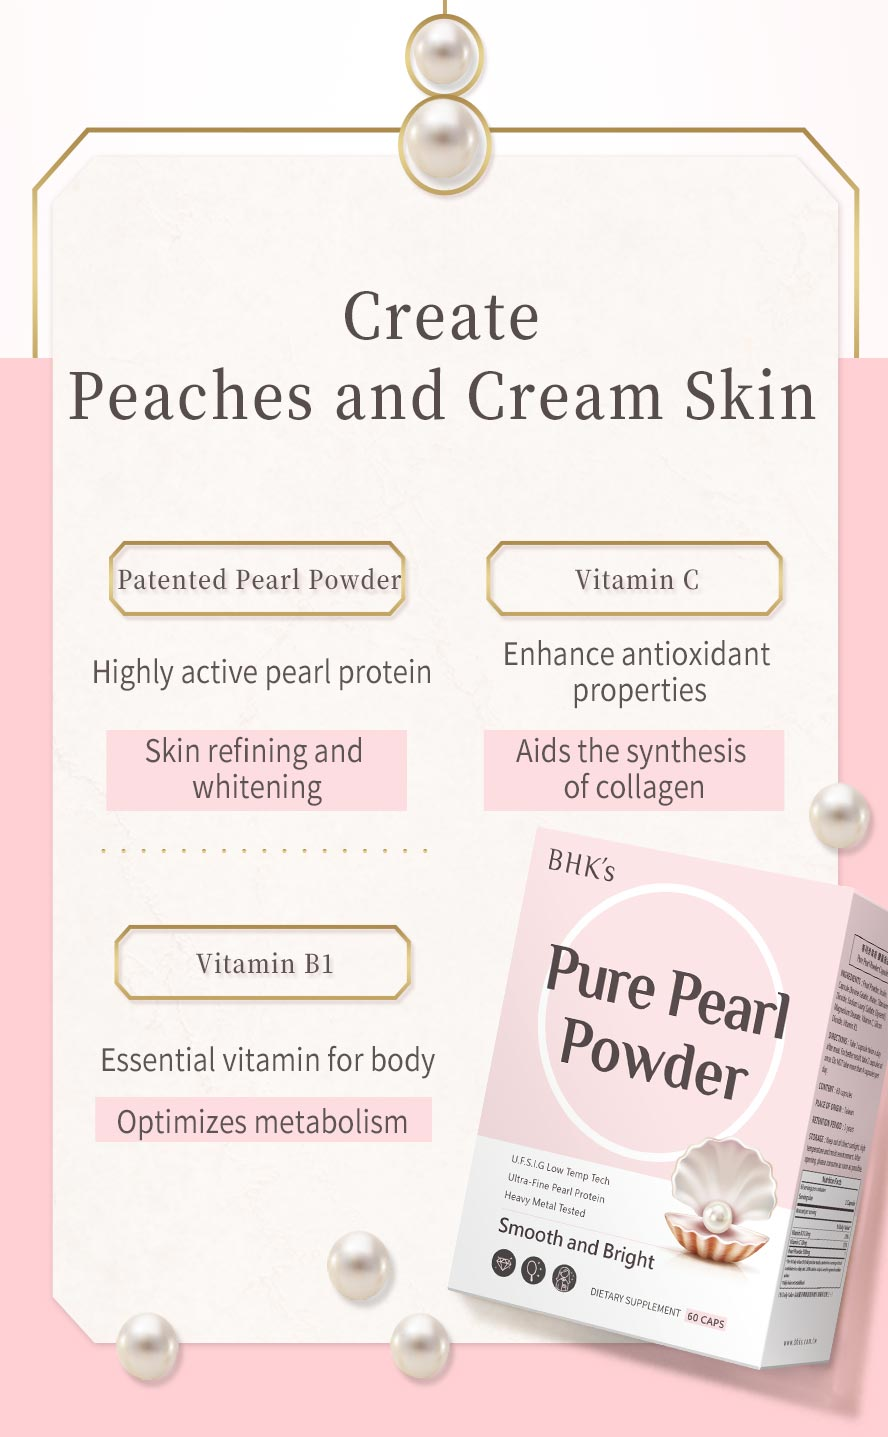 BHKs pearl powder contains vitamin C that promotes collagen production to bring elastic to skin and vitamin B1 to boost metabolism.